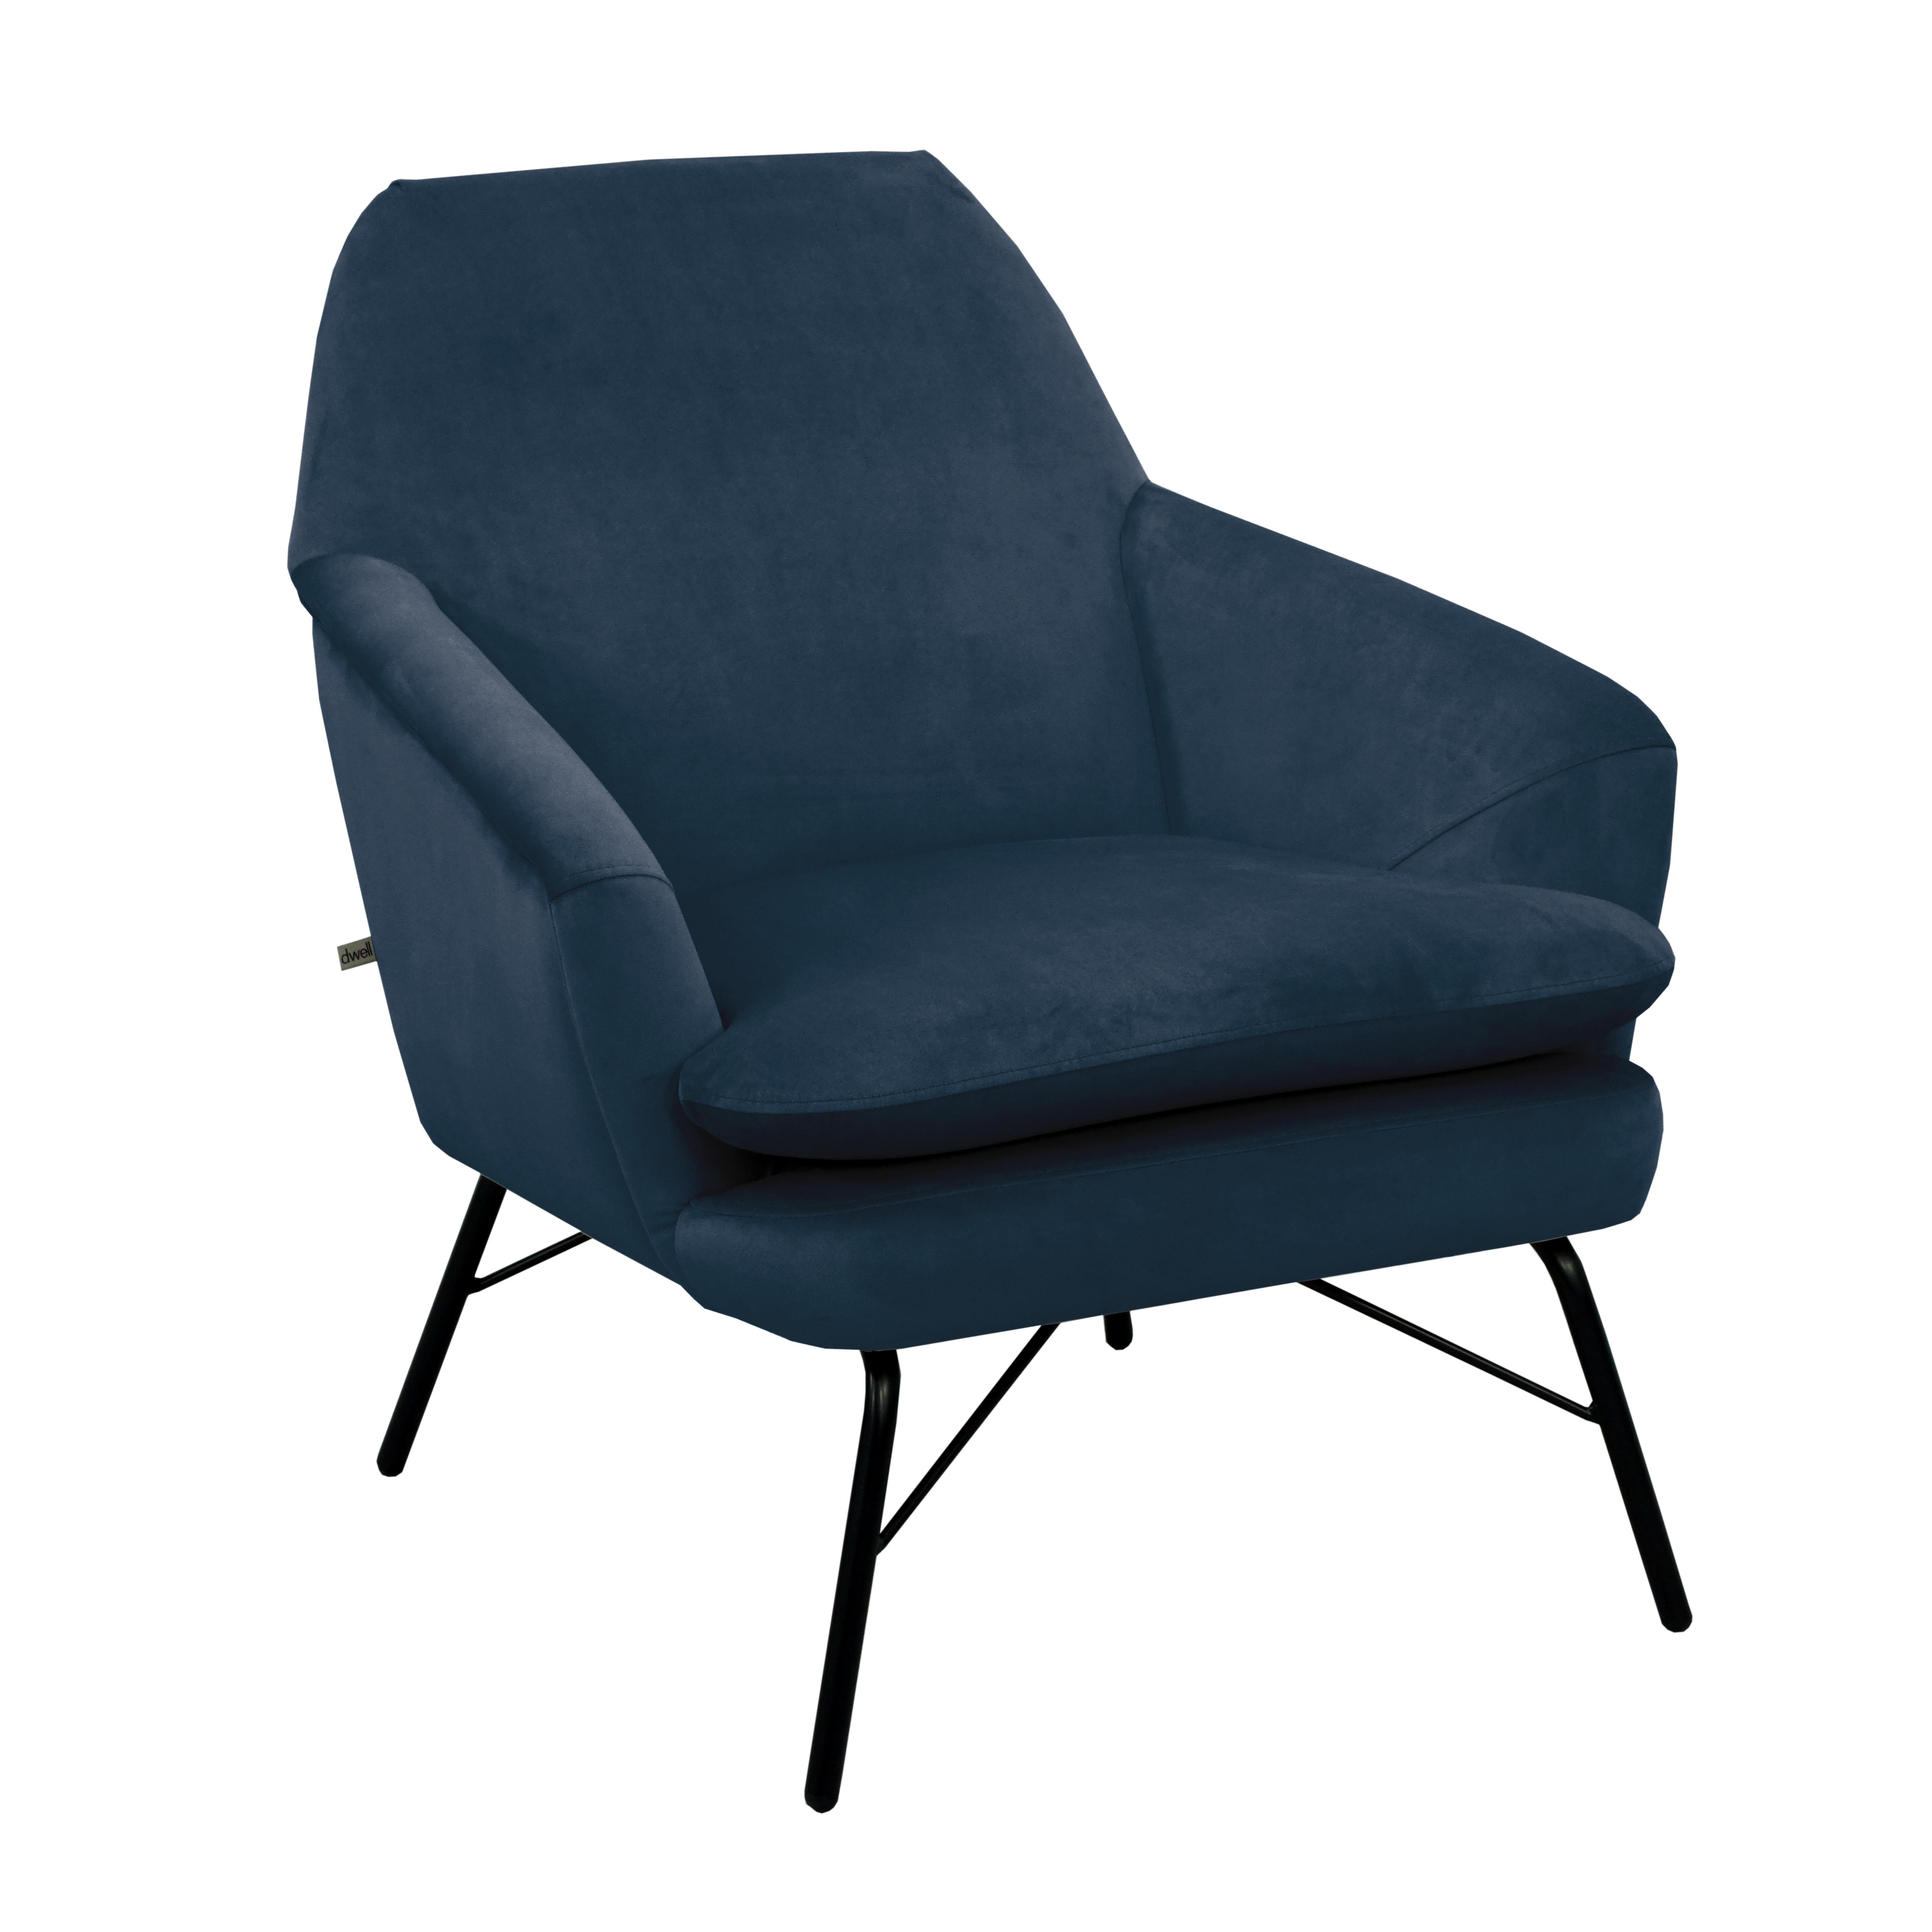 Acuta accent chair alba velvet blue